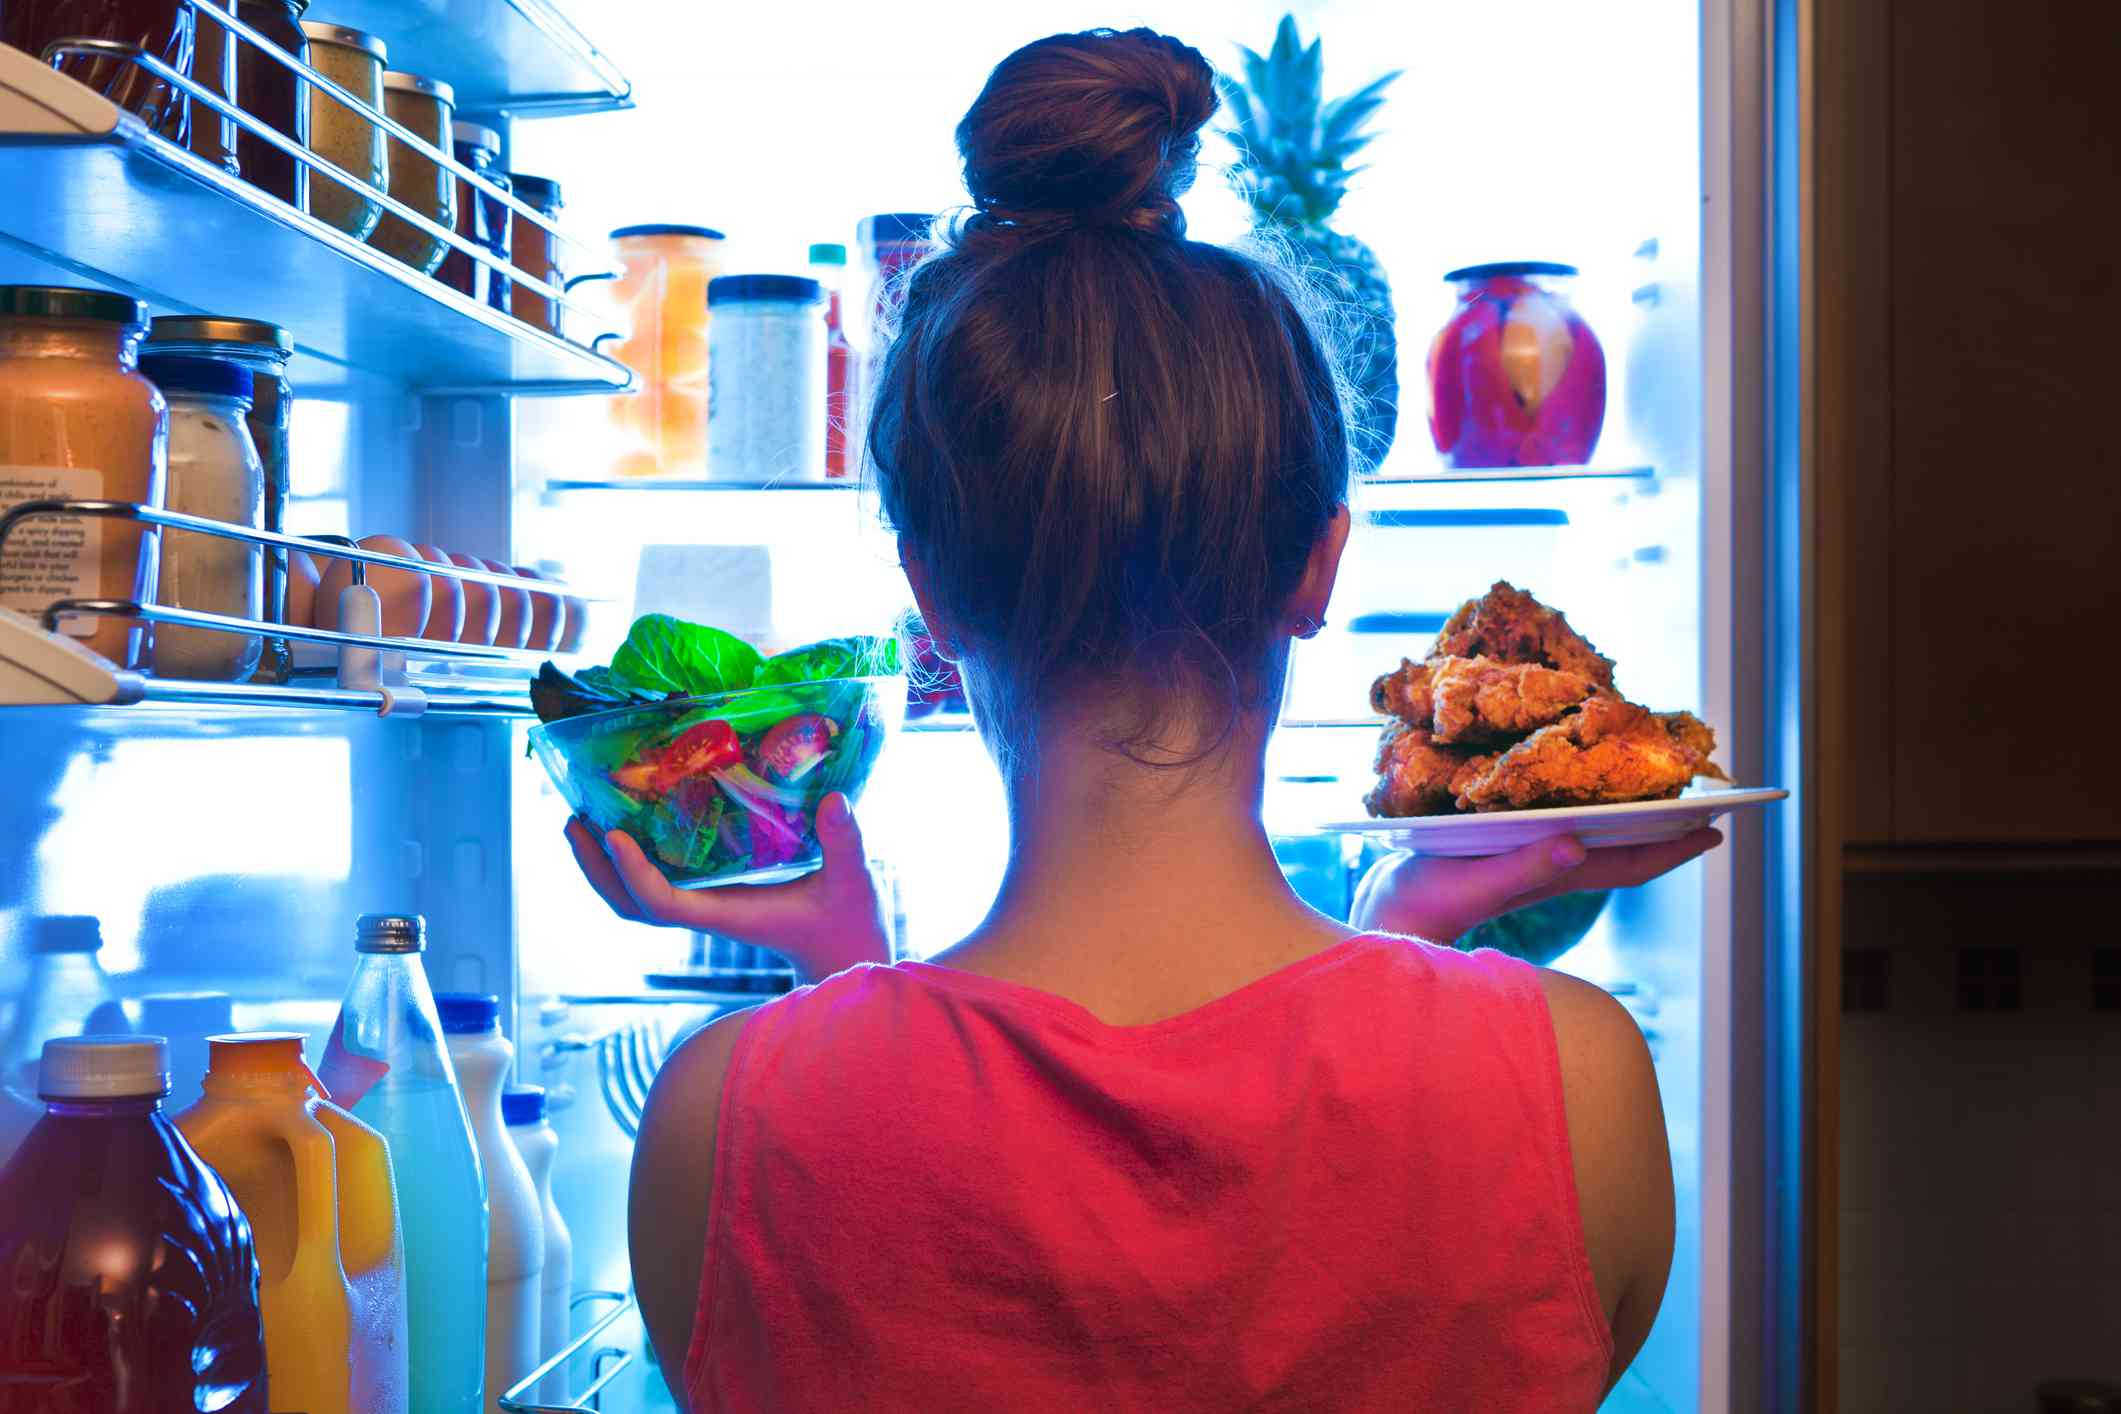 Woman pulling unwrapped food from the fridge.